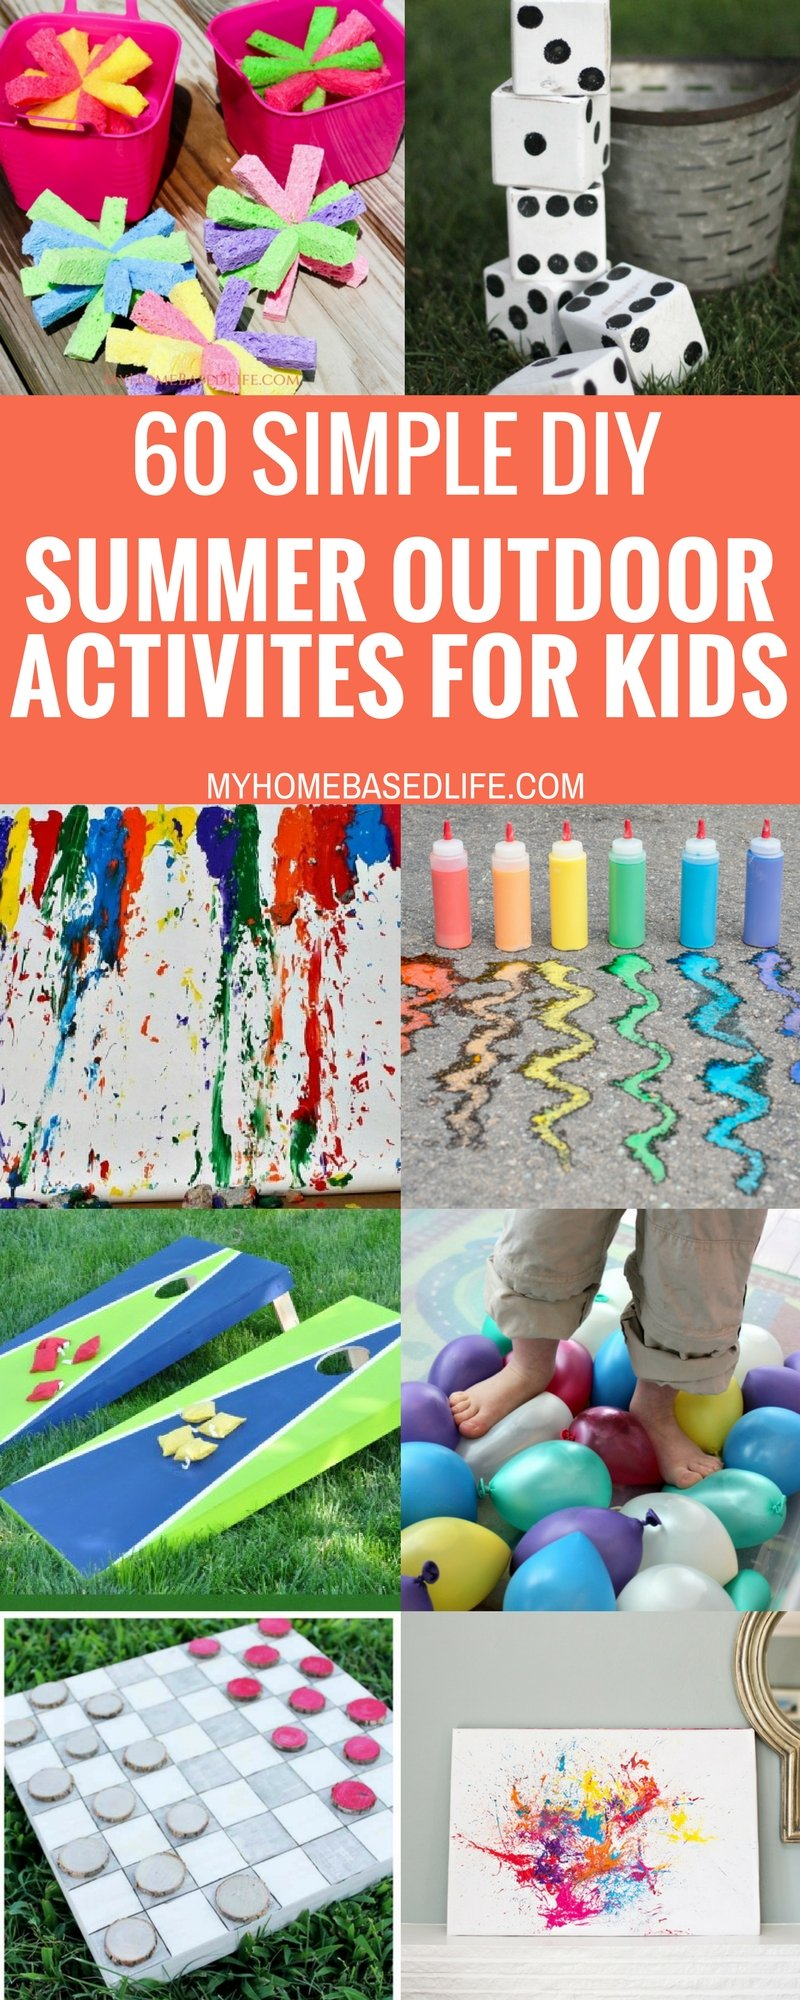 With these 60 Summer Outdoor Activities for Kids, you will have something lined up all summer long. Get ready for the summer of a lifetime! #summertime #outdooractivities #unplugged #kids #wateractivities #yardgames #myhomebasedlife | Fun Yard Games | Summertime Fun | Summer Games | Outdoor Activities for Kids | Easy DIY yard Games | Easy DIY Water Activities | Family Summer Fun |